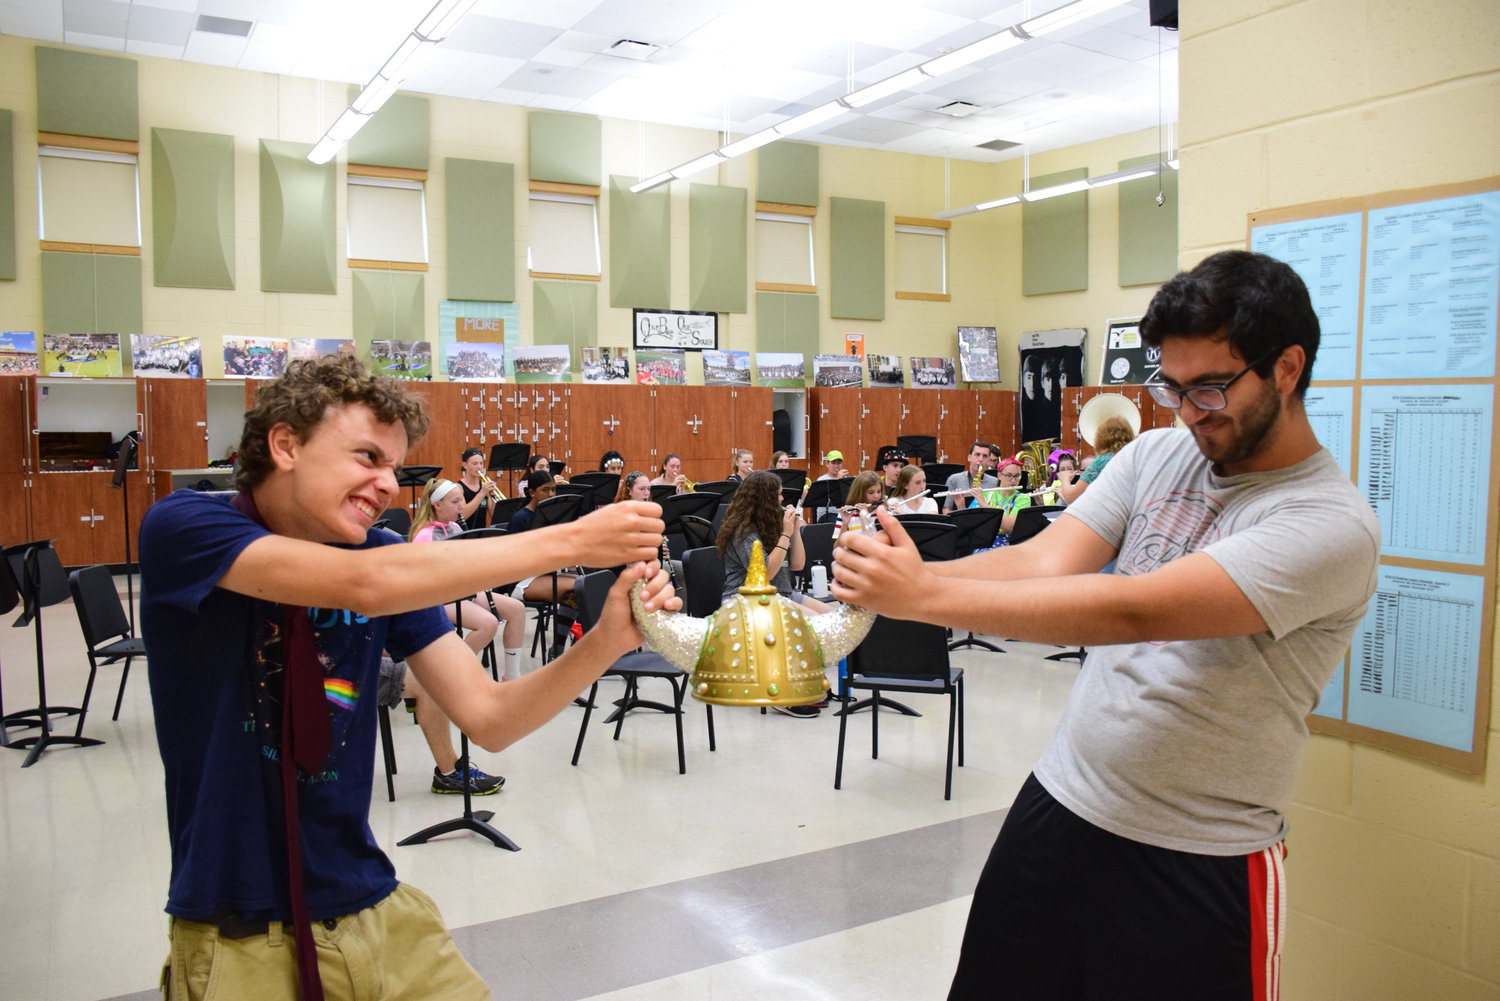 Drum majors Andrew Calvacca, left, And Pablo Hashem battled for the jewel-encrusted Viking helmet that is at the center of this year's show.